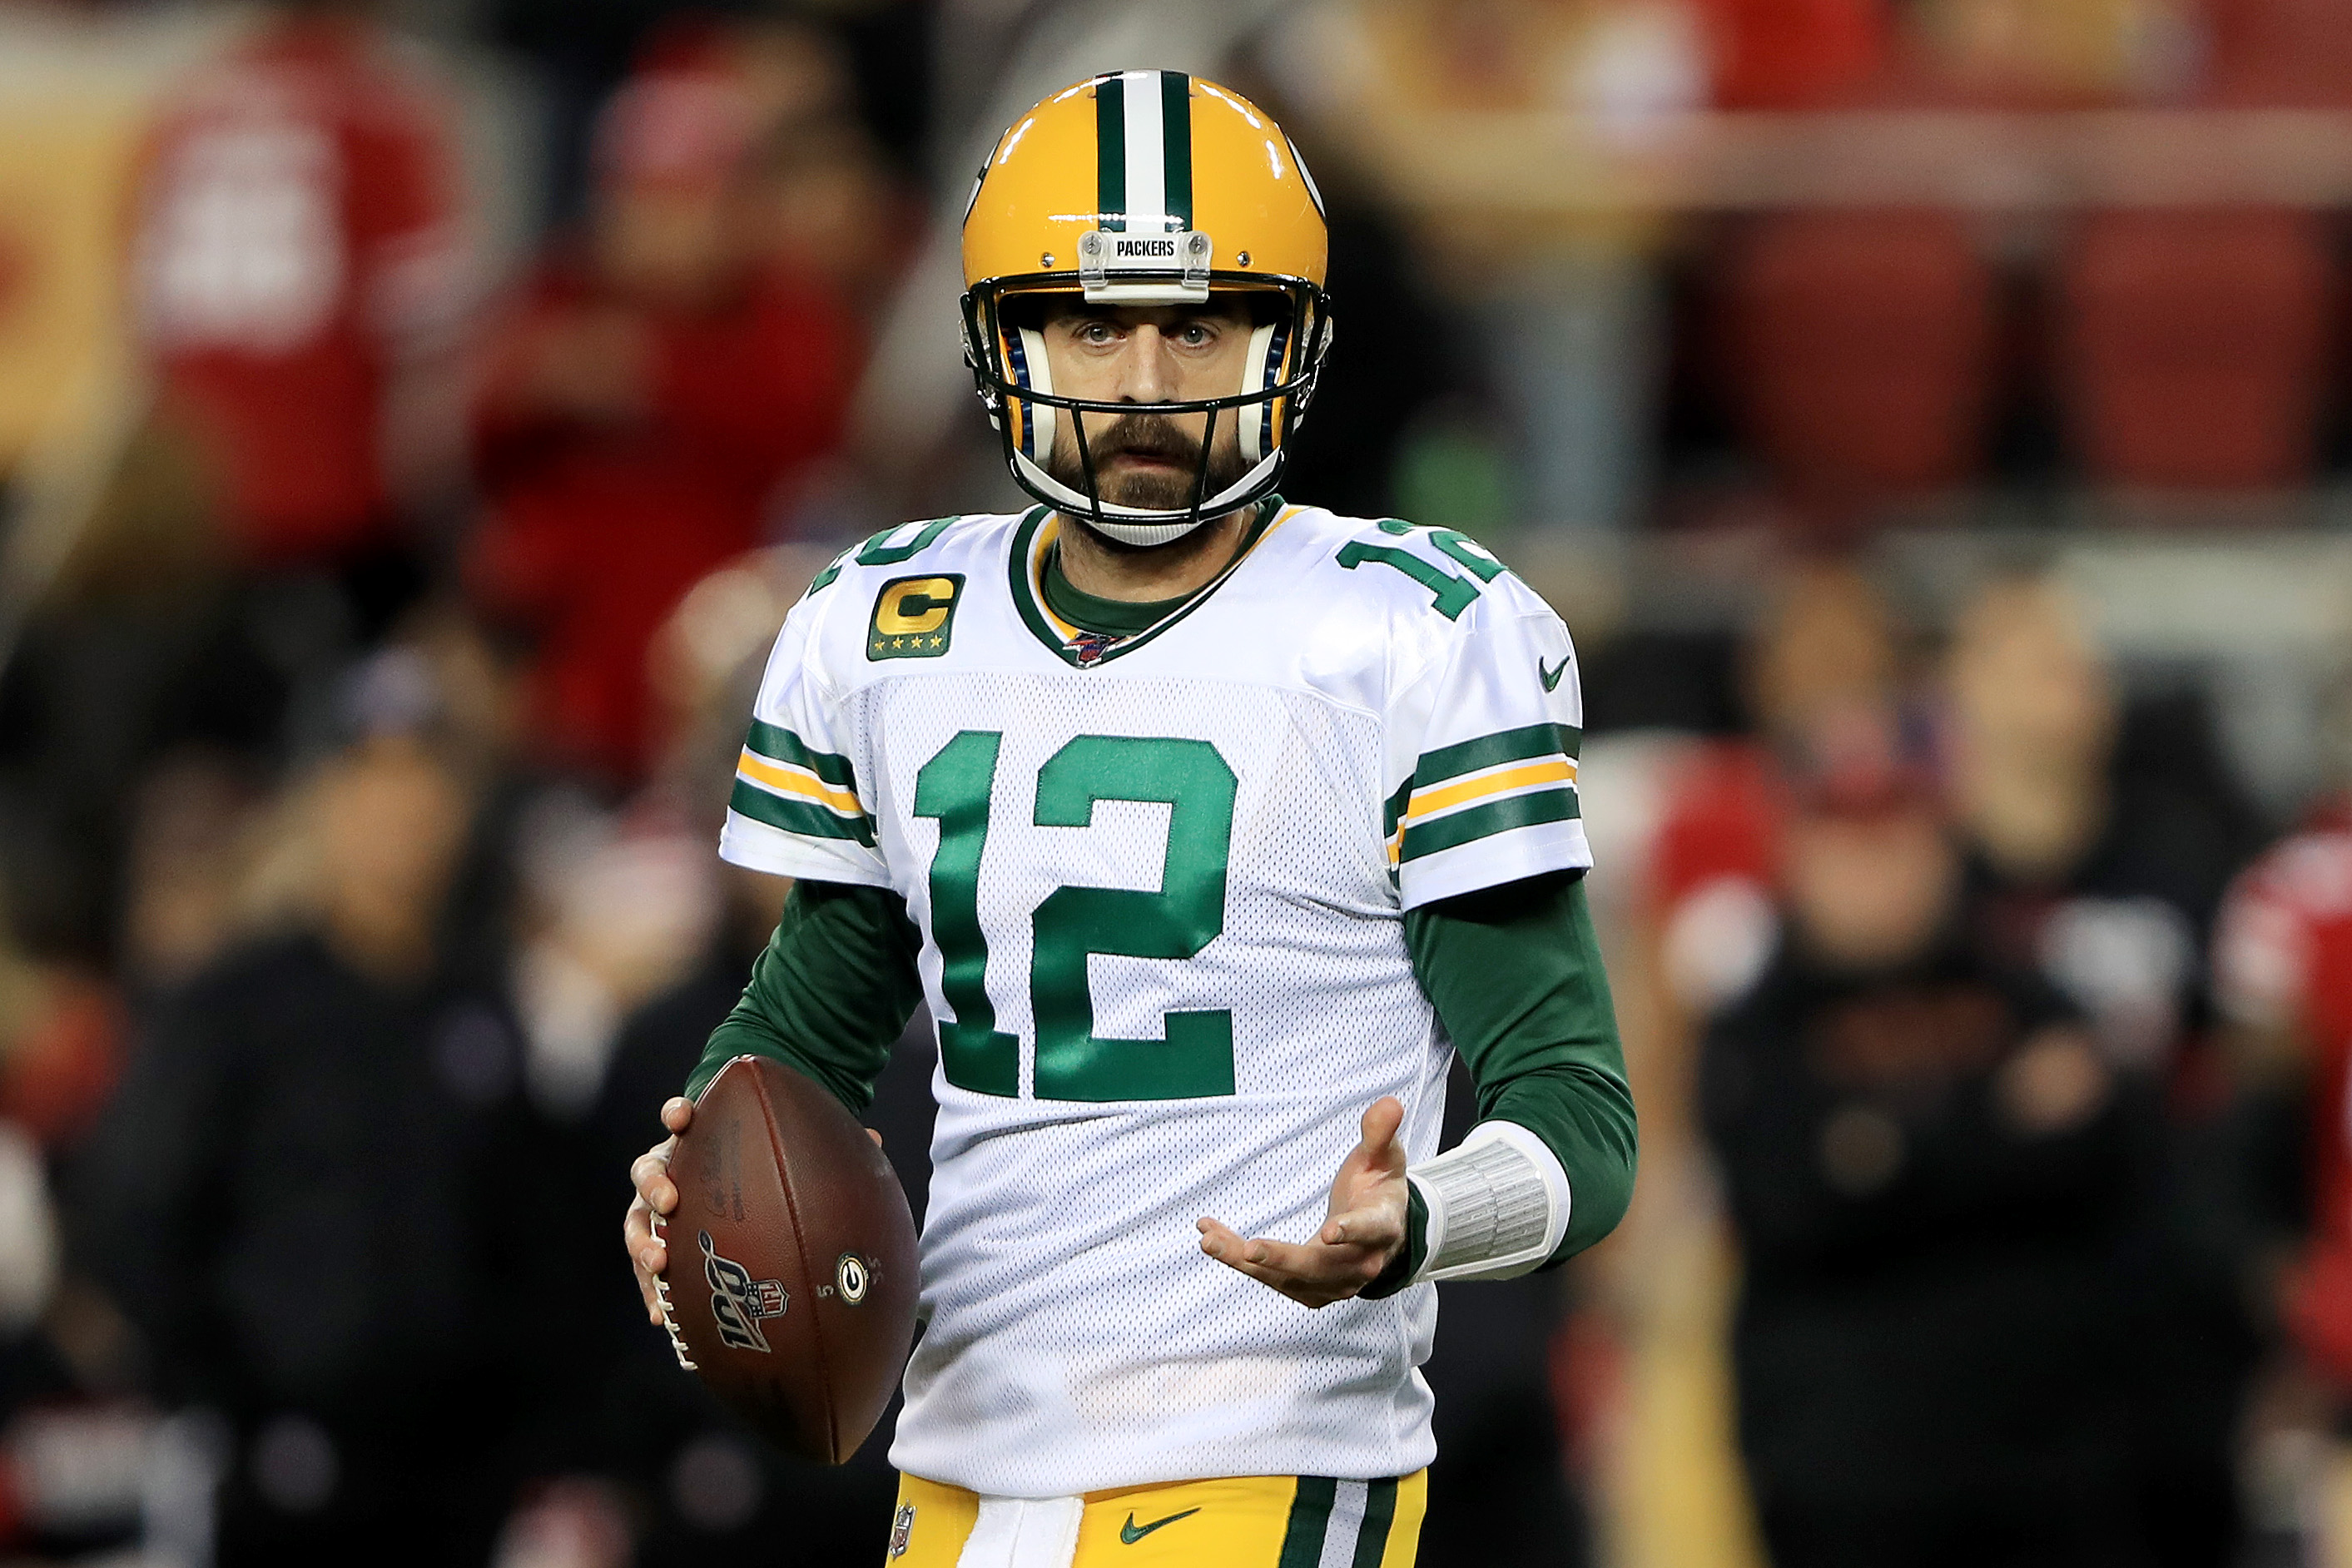 The Green Bay Packers sent Aaron Rodgers a $12 million message about his future.